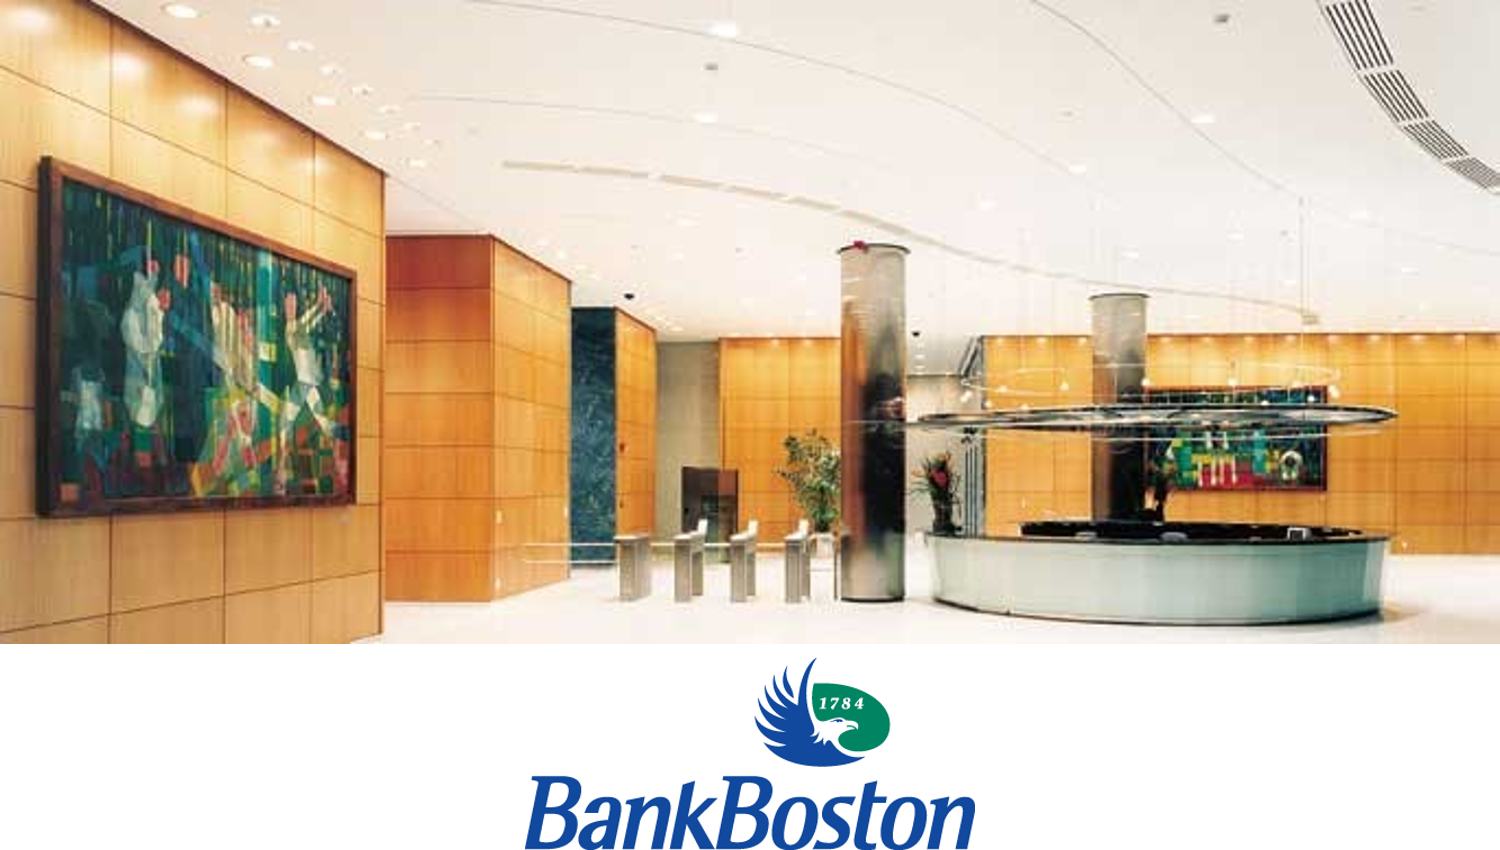 Cliente: Bank Boston